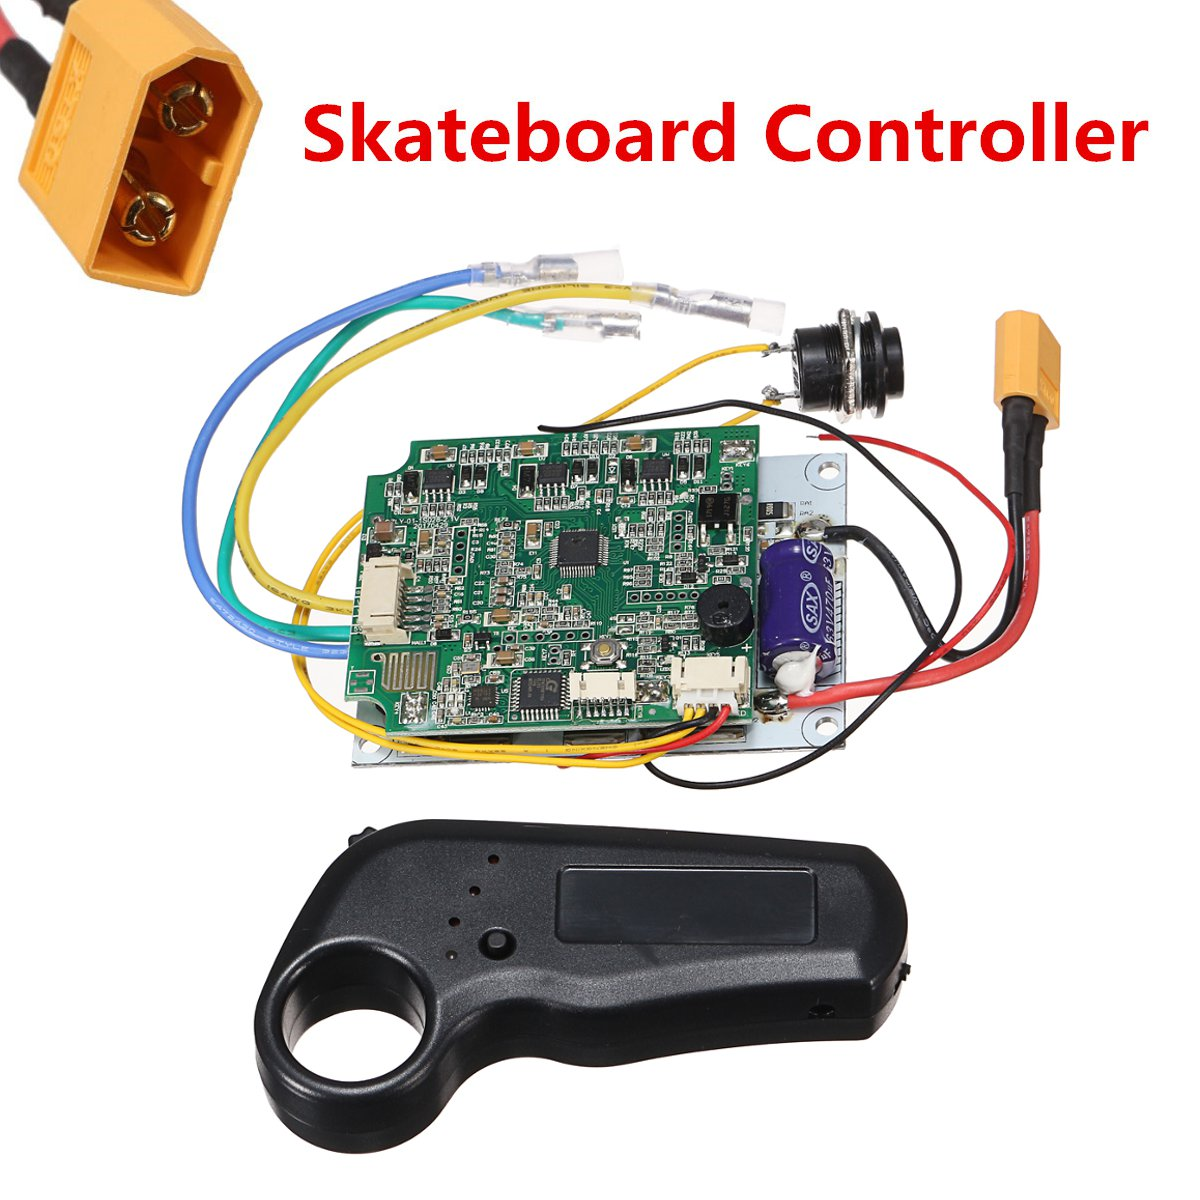 Maytech Electric Skateboard Esc 50a 12s Super With 33firmware Single Motor How To Wire Twin Motors Mini Remote Controller Longboard Substitute For